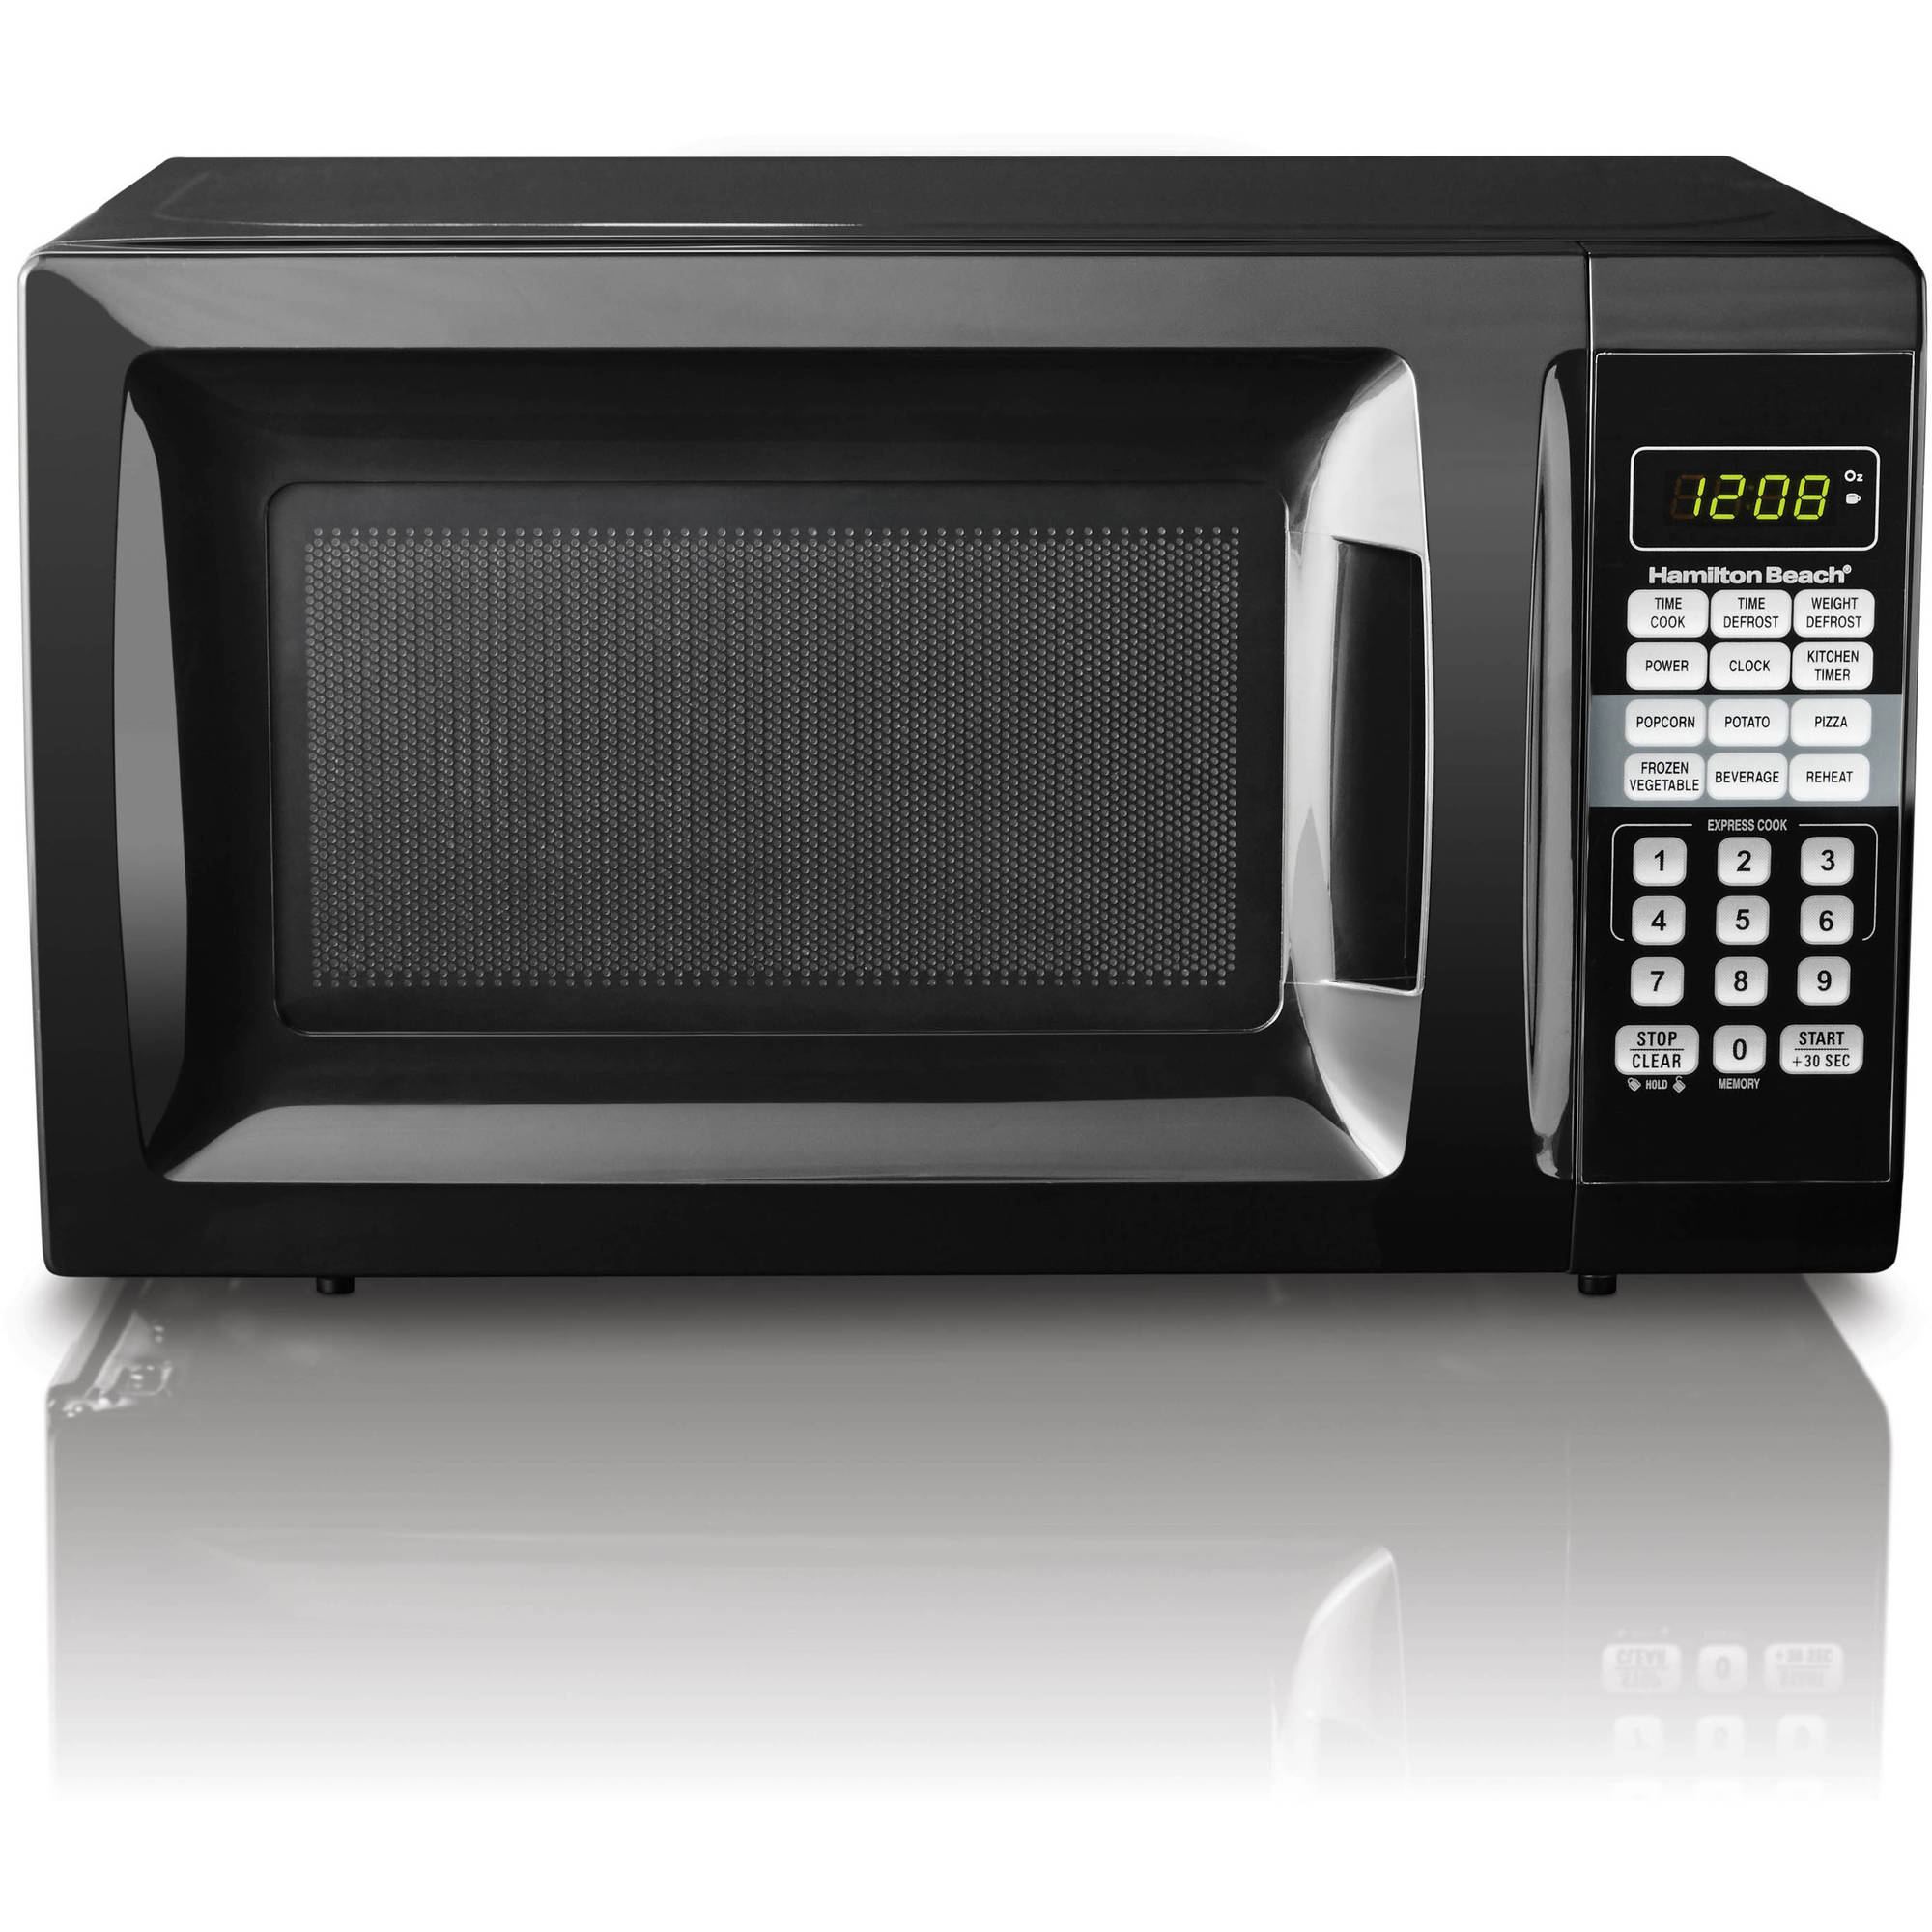 Hamilton Beach 0.7 cu ft Microwave Oven Kitchen Countertop Cooking ...